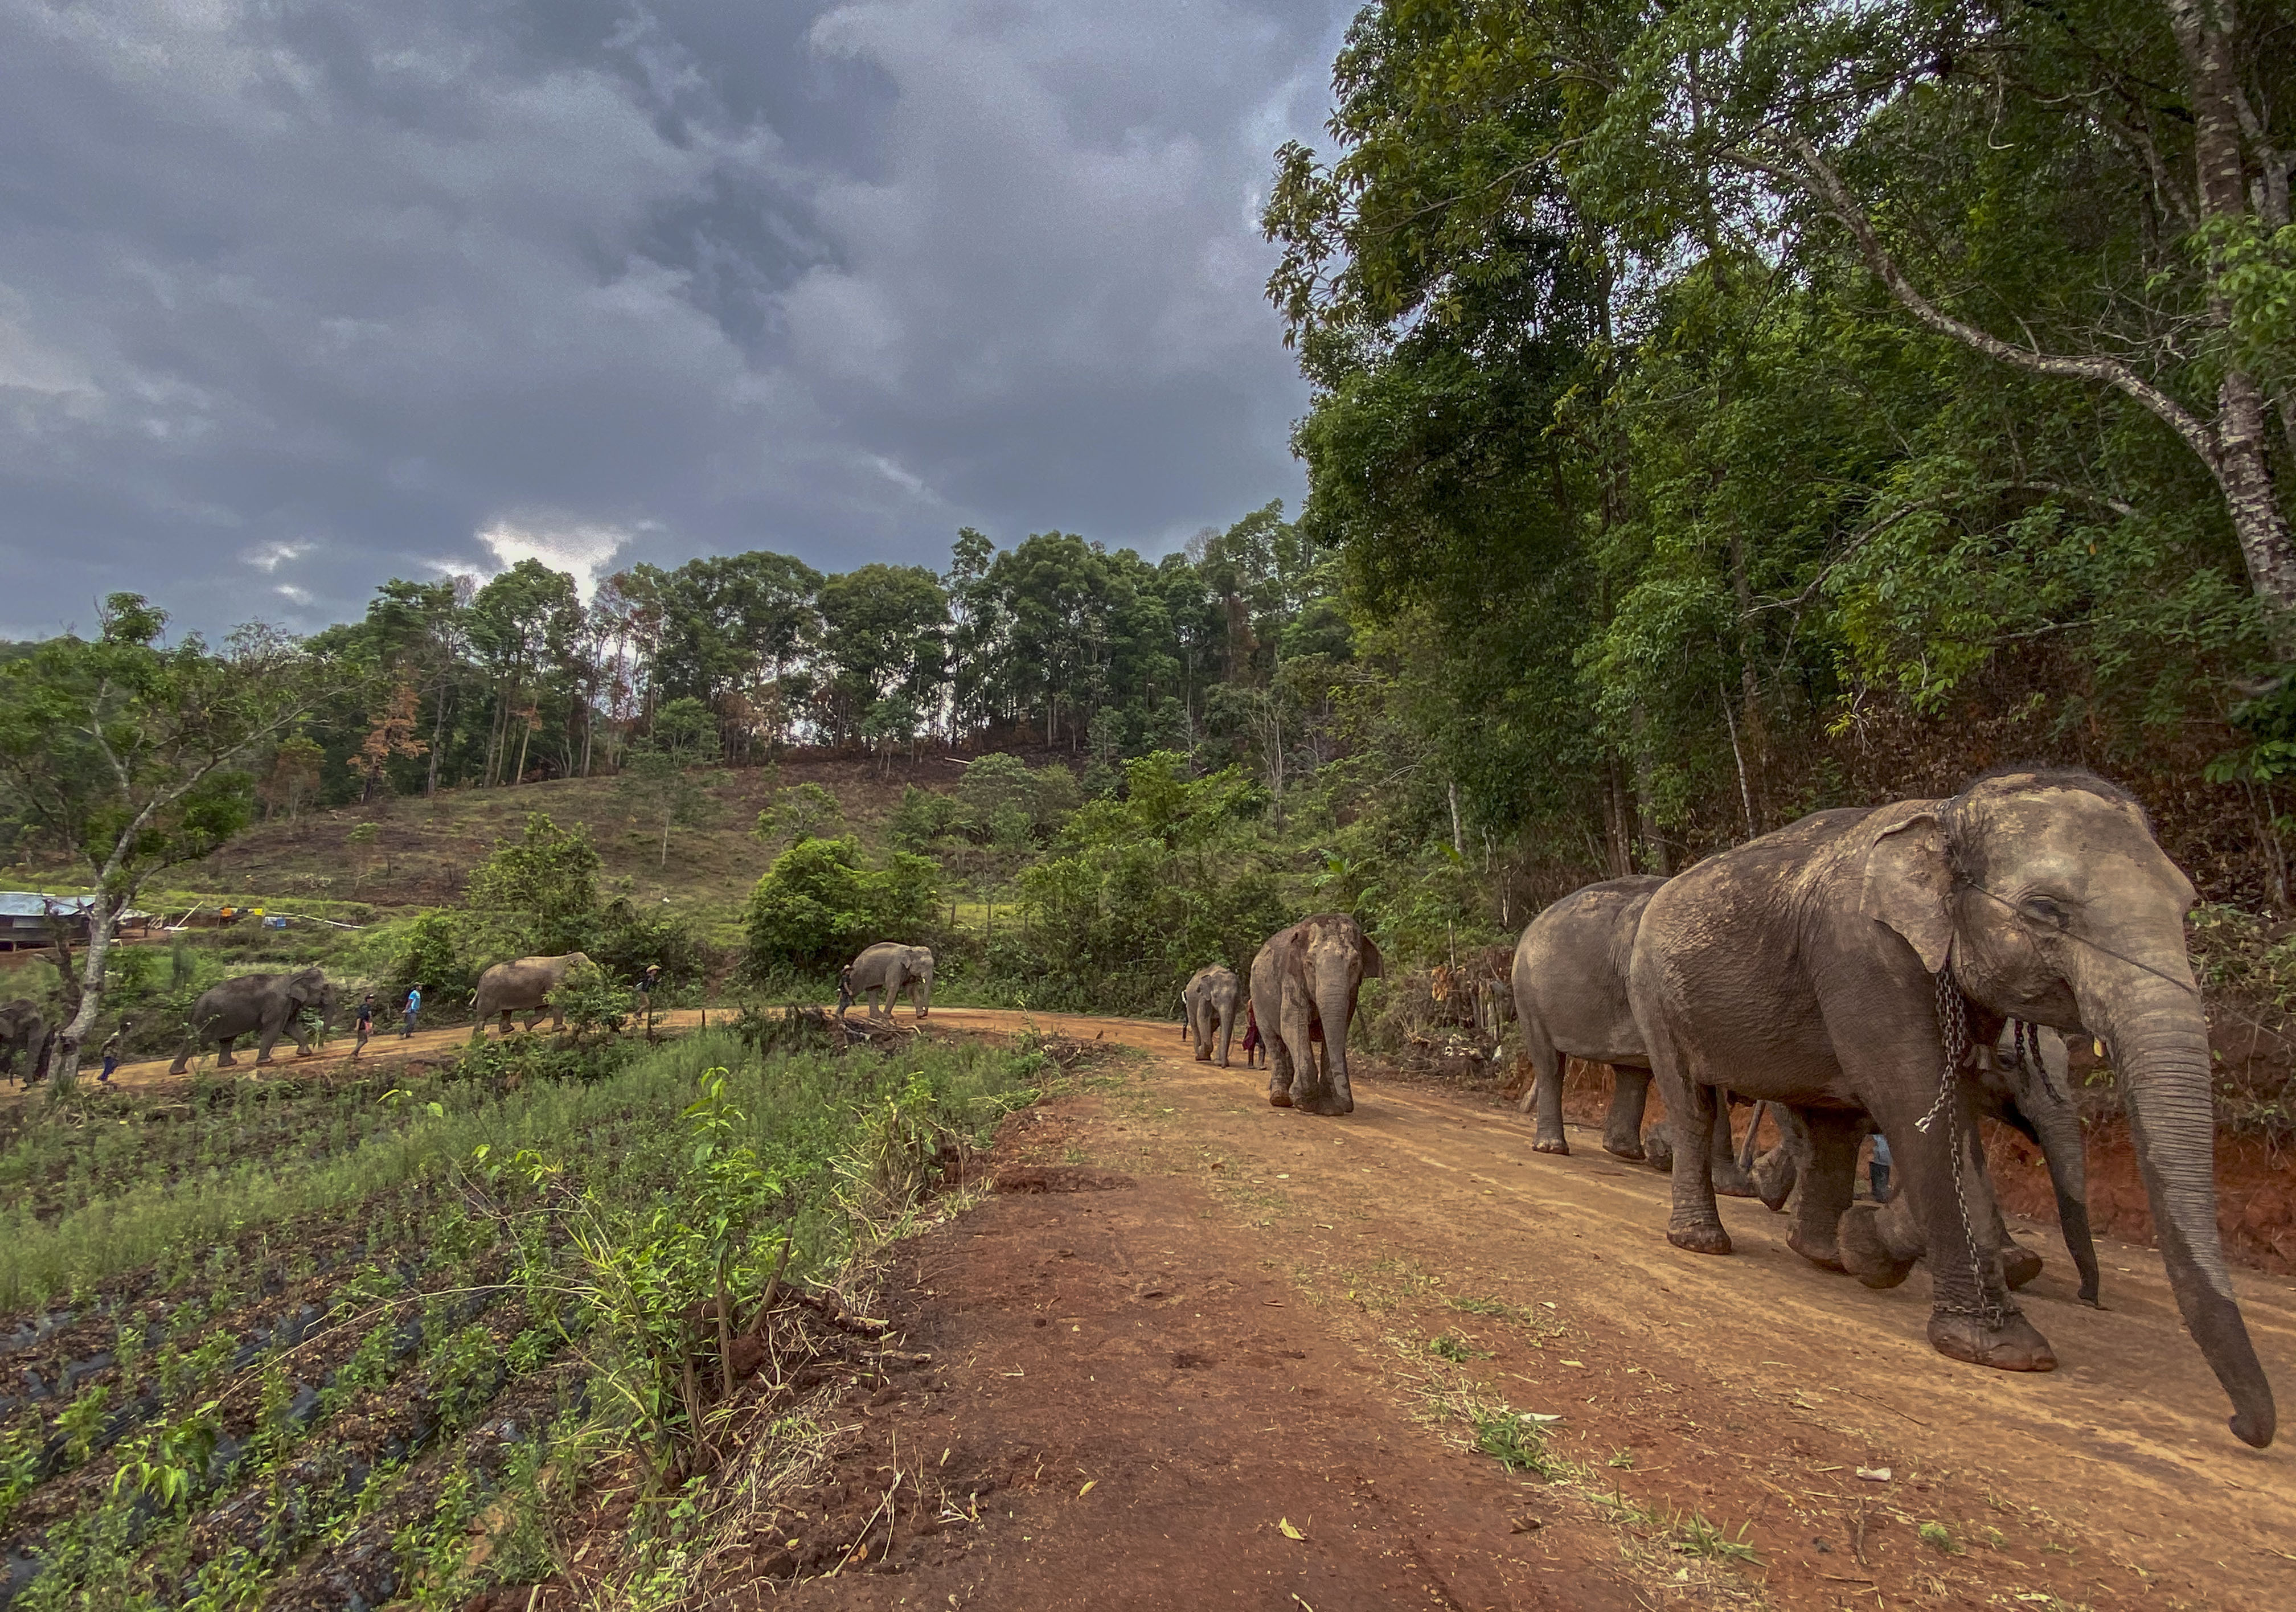 A herd of 11 elephants walk along a dirt road during a 150-kilometer (93 mile) journey from Mae Wang to Ban Huay in northern Thailand on April 30, 2020.